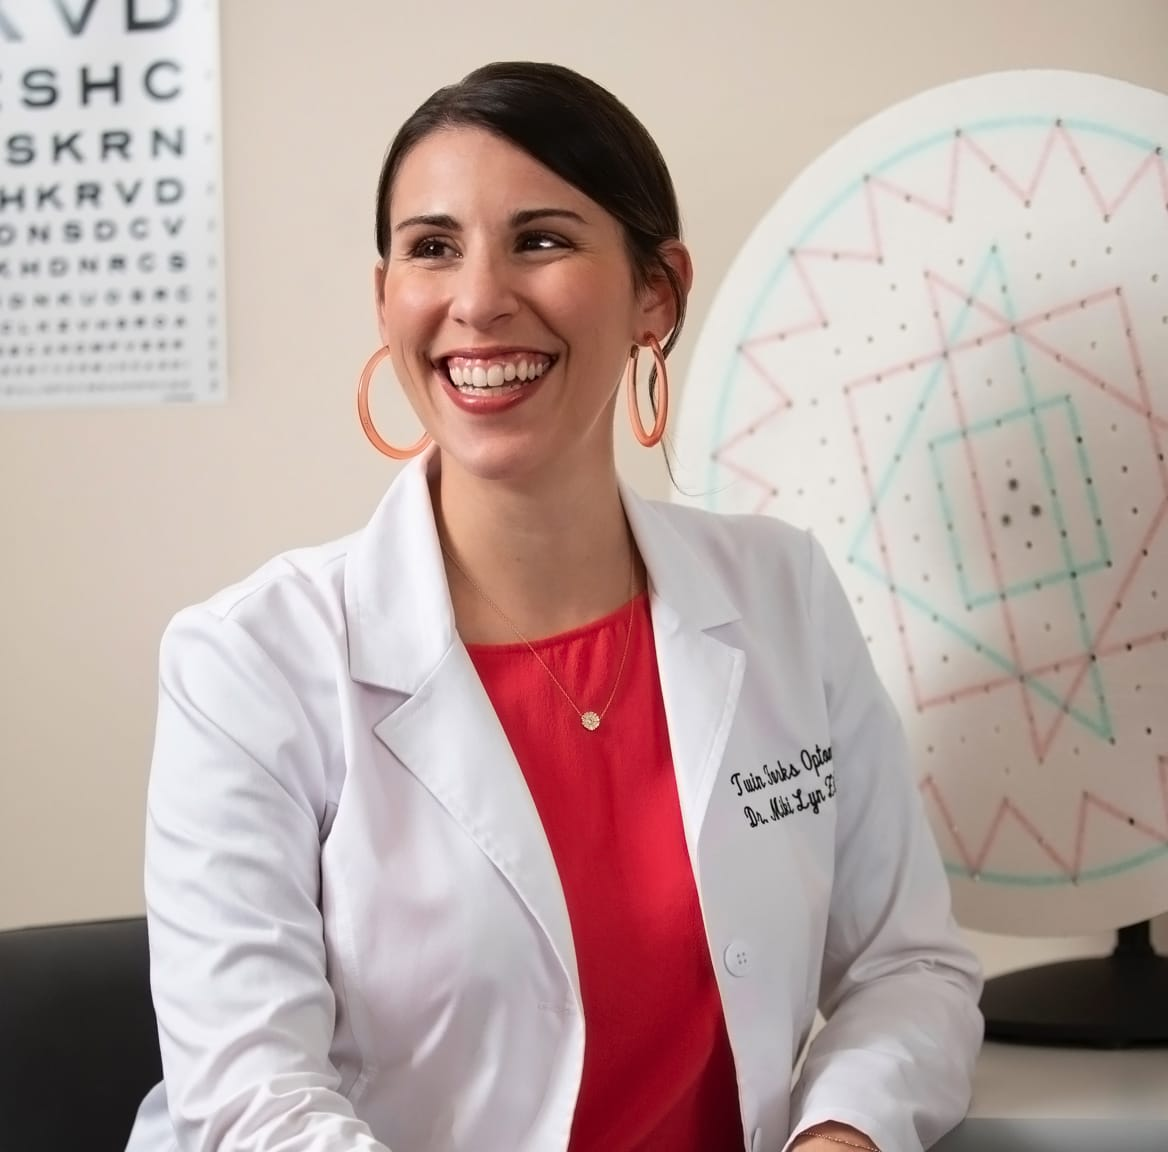 Explore the possibilities of a career in optometry